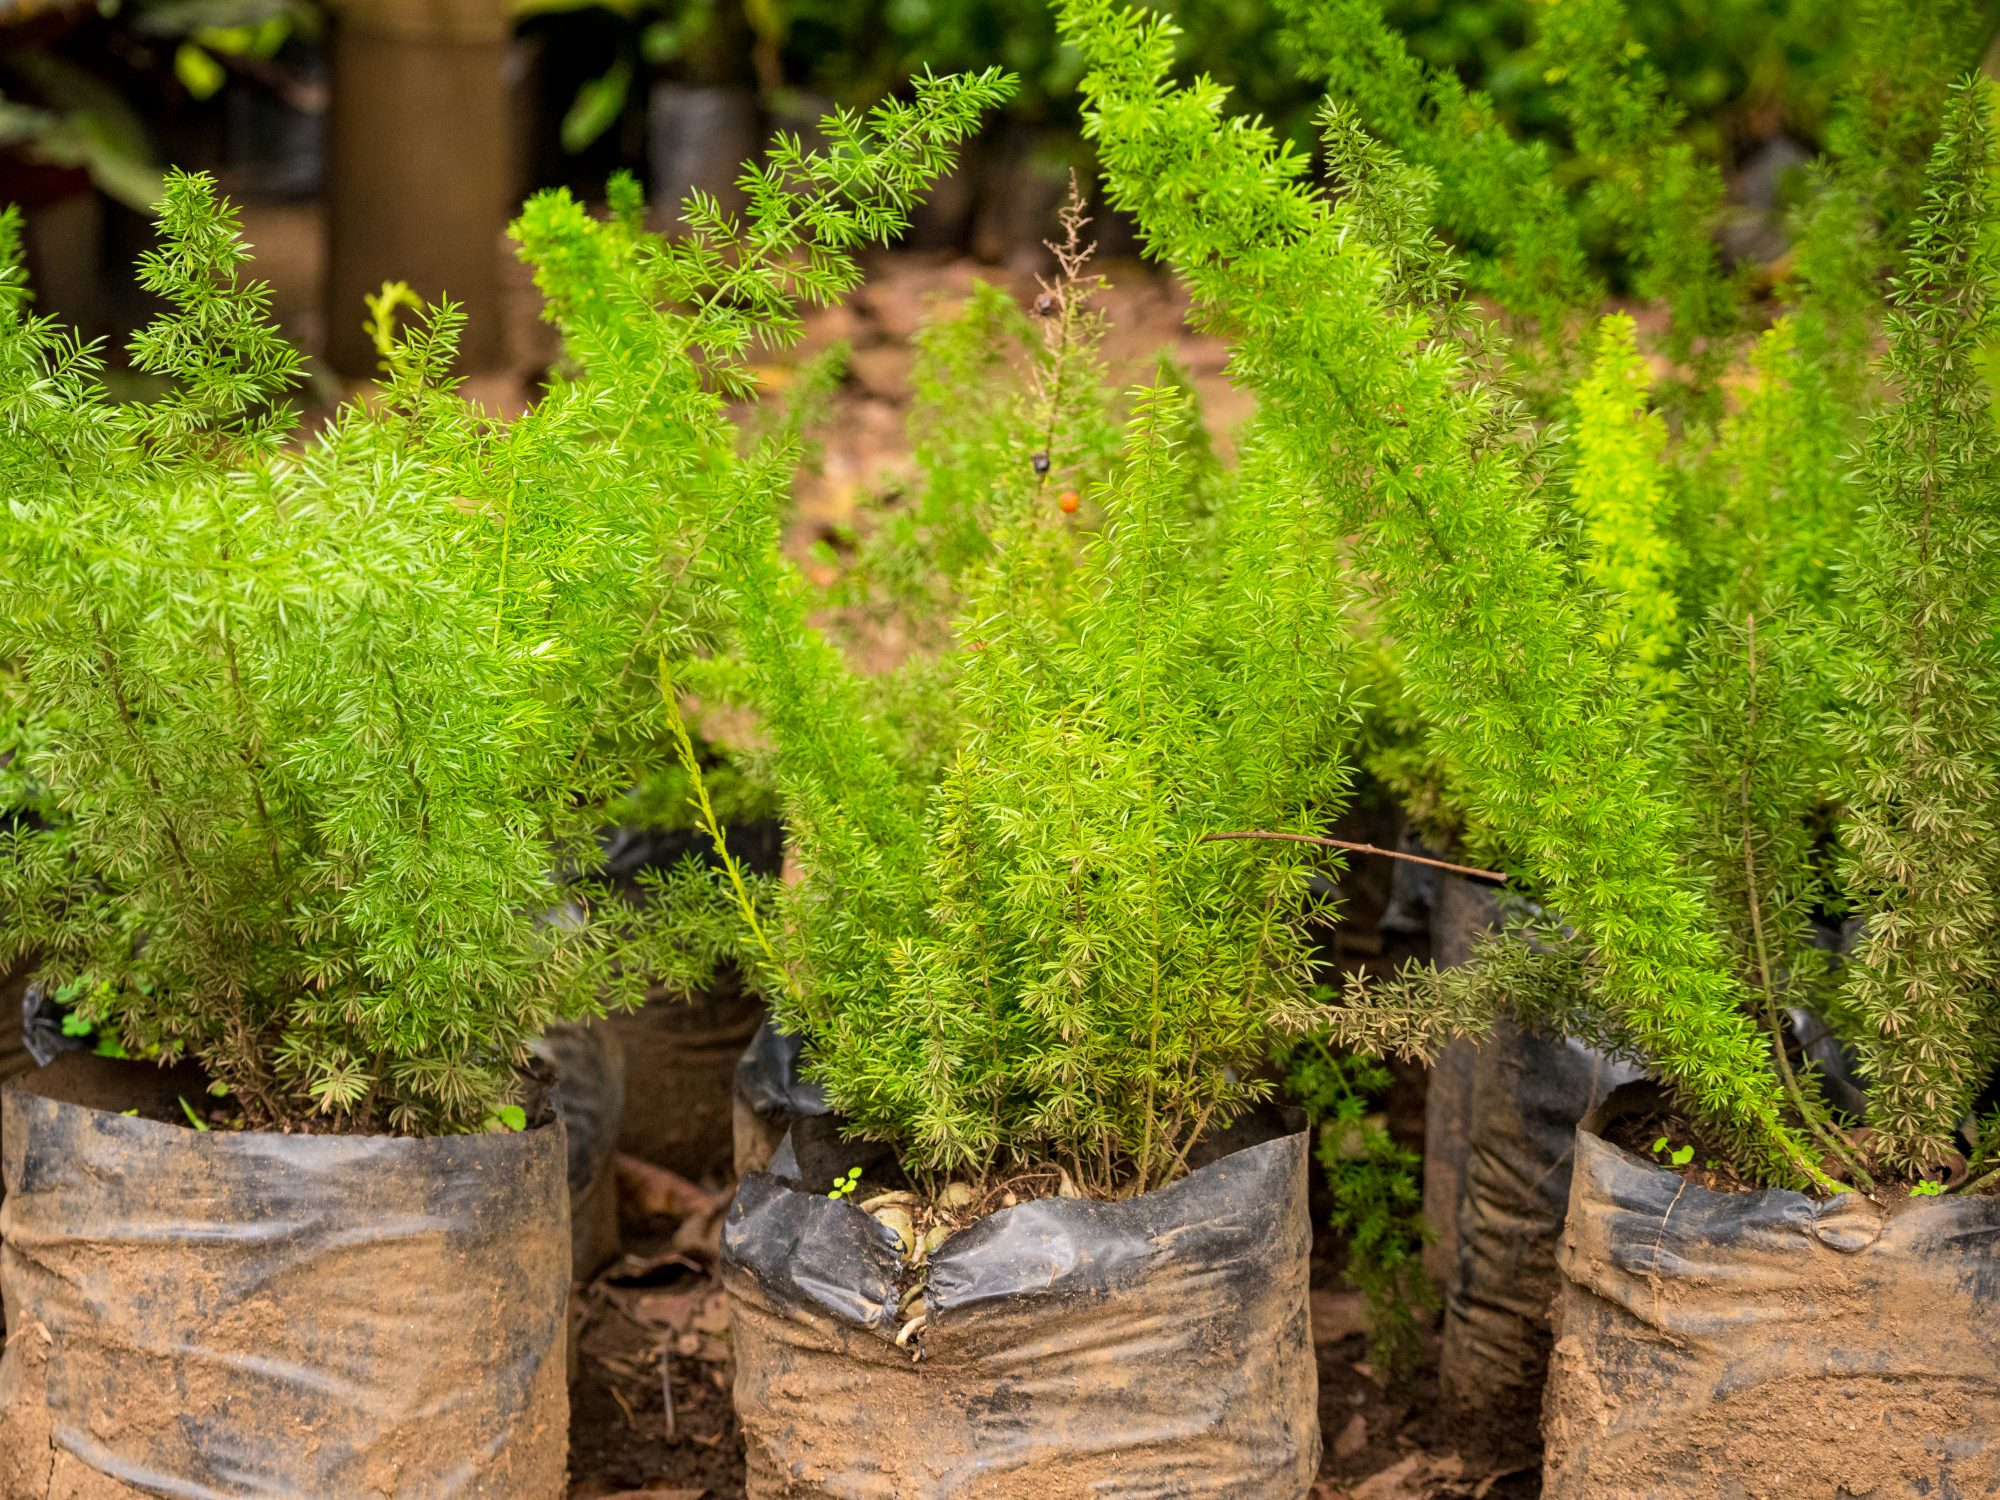 asparagus ferns wrapped in a garden center